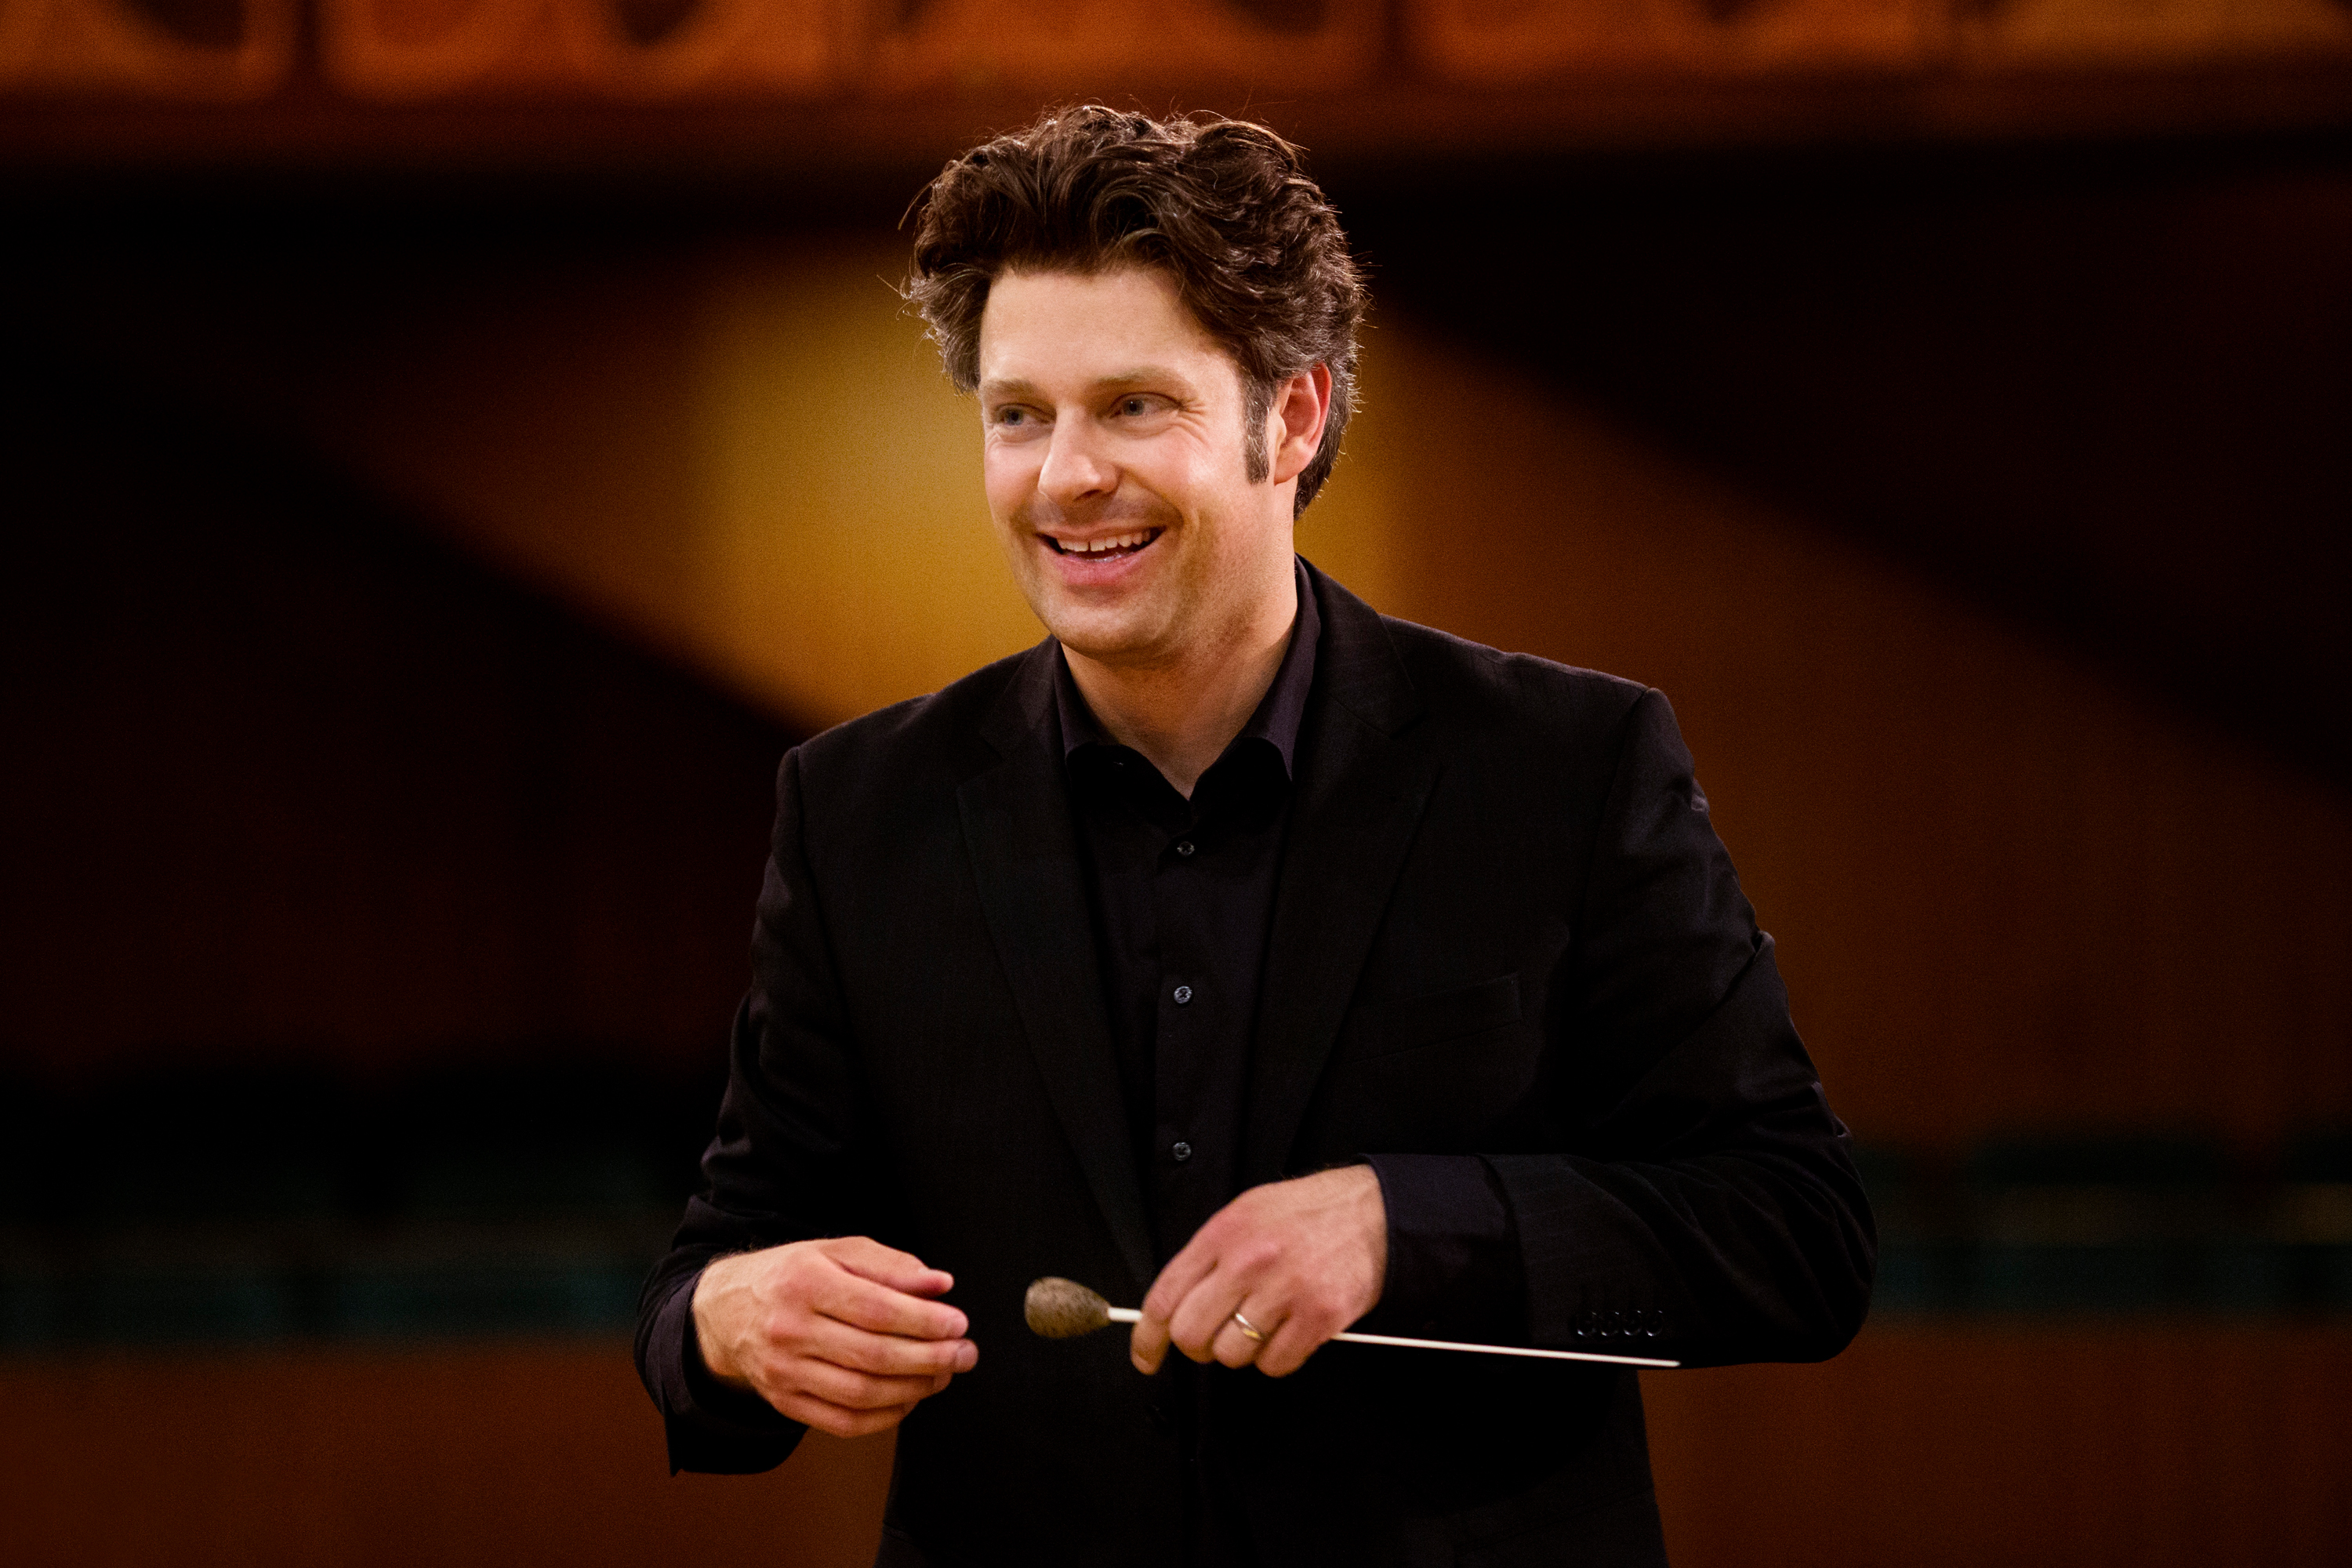 Joseph Bastian debuts with the Orchestre symphonique et lyrique de Nancy 4